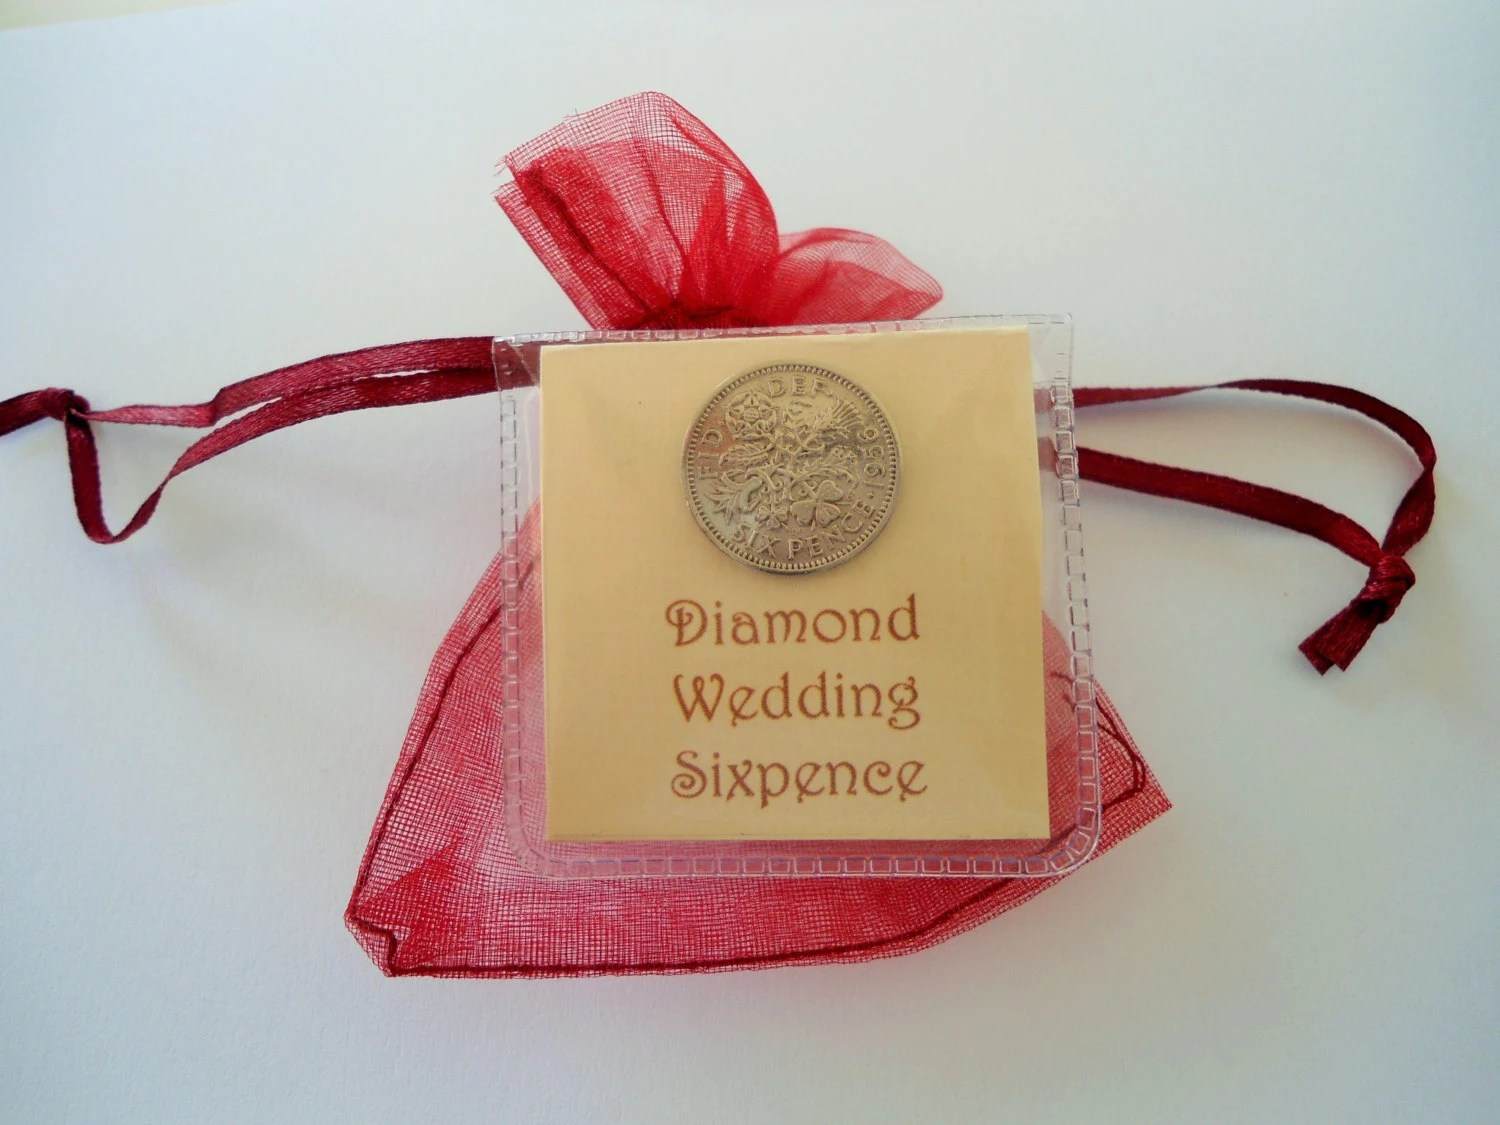 60th Anniversary Gift Diamond Wedding Sixpence 60th By